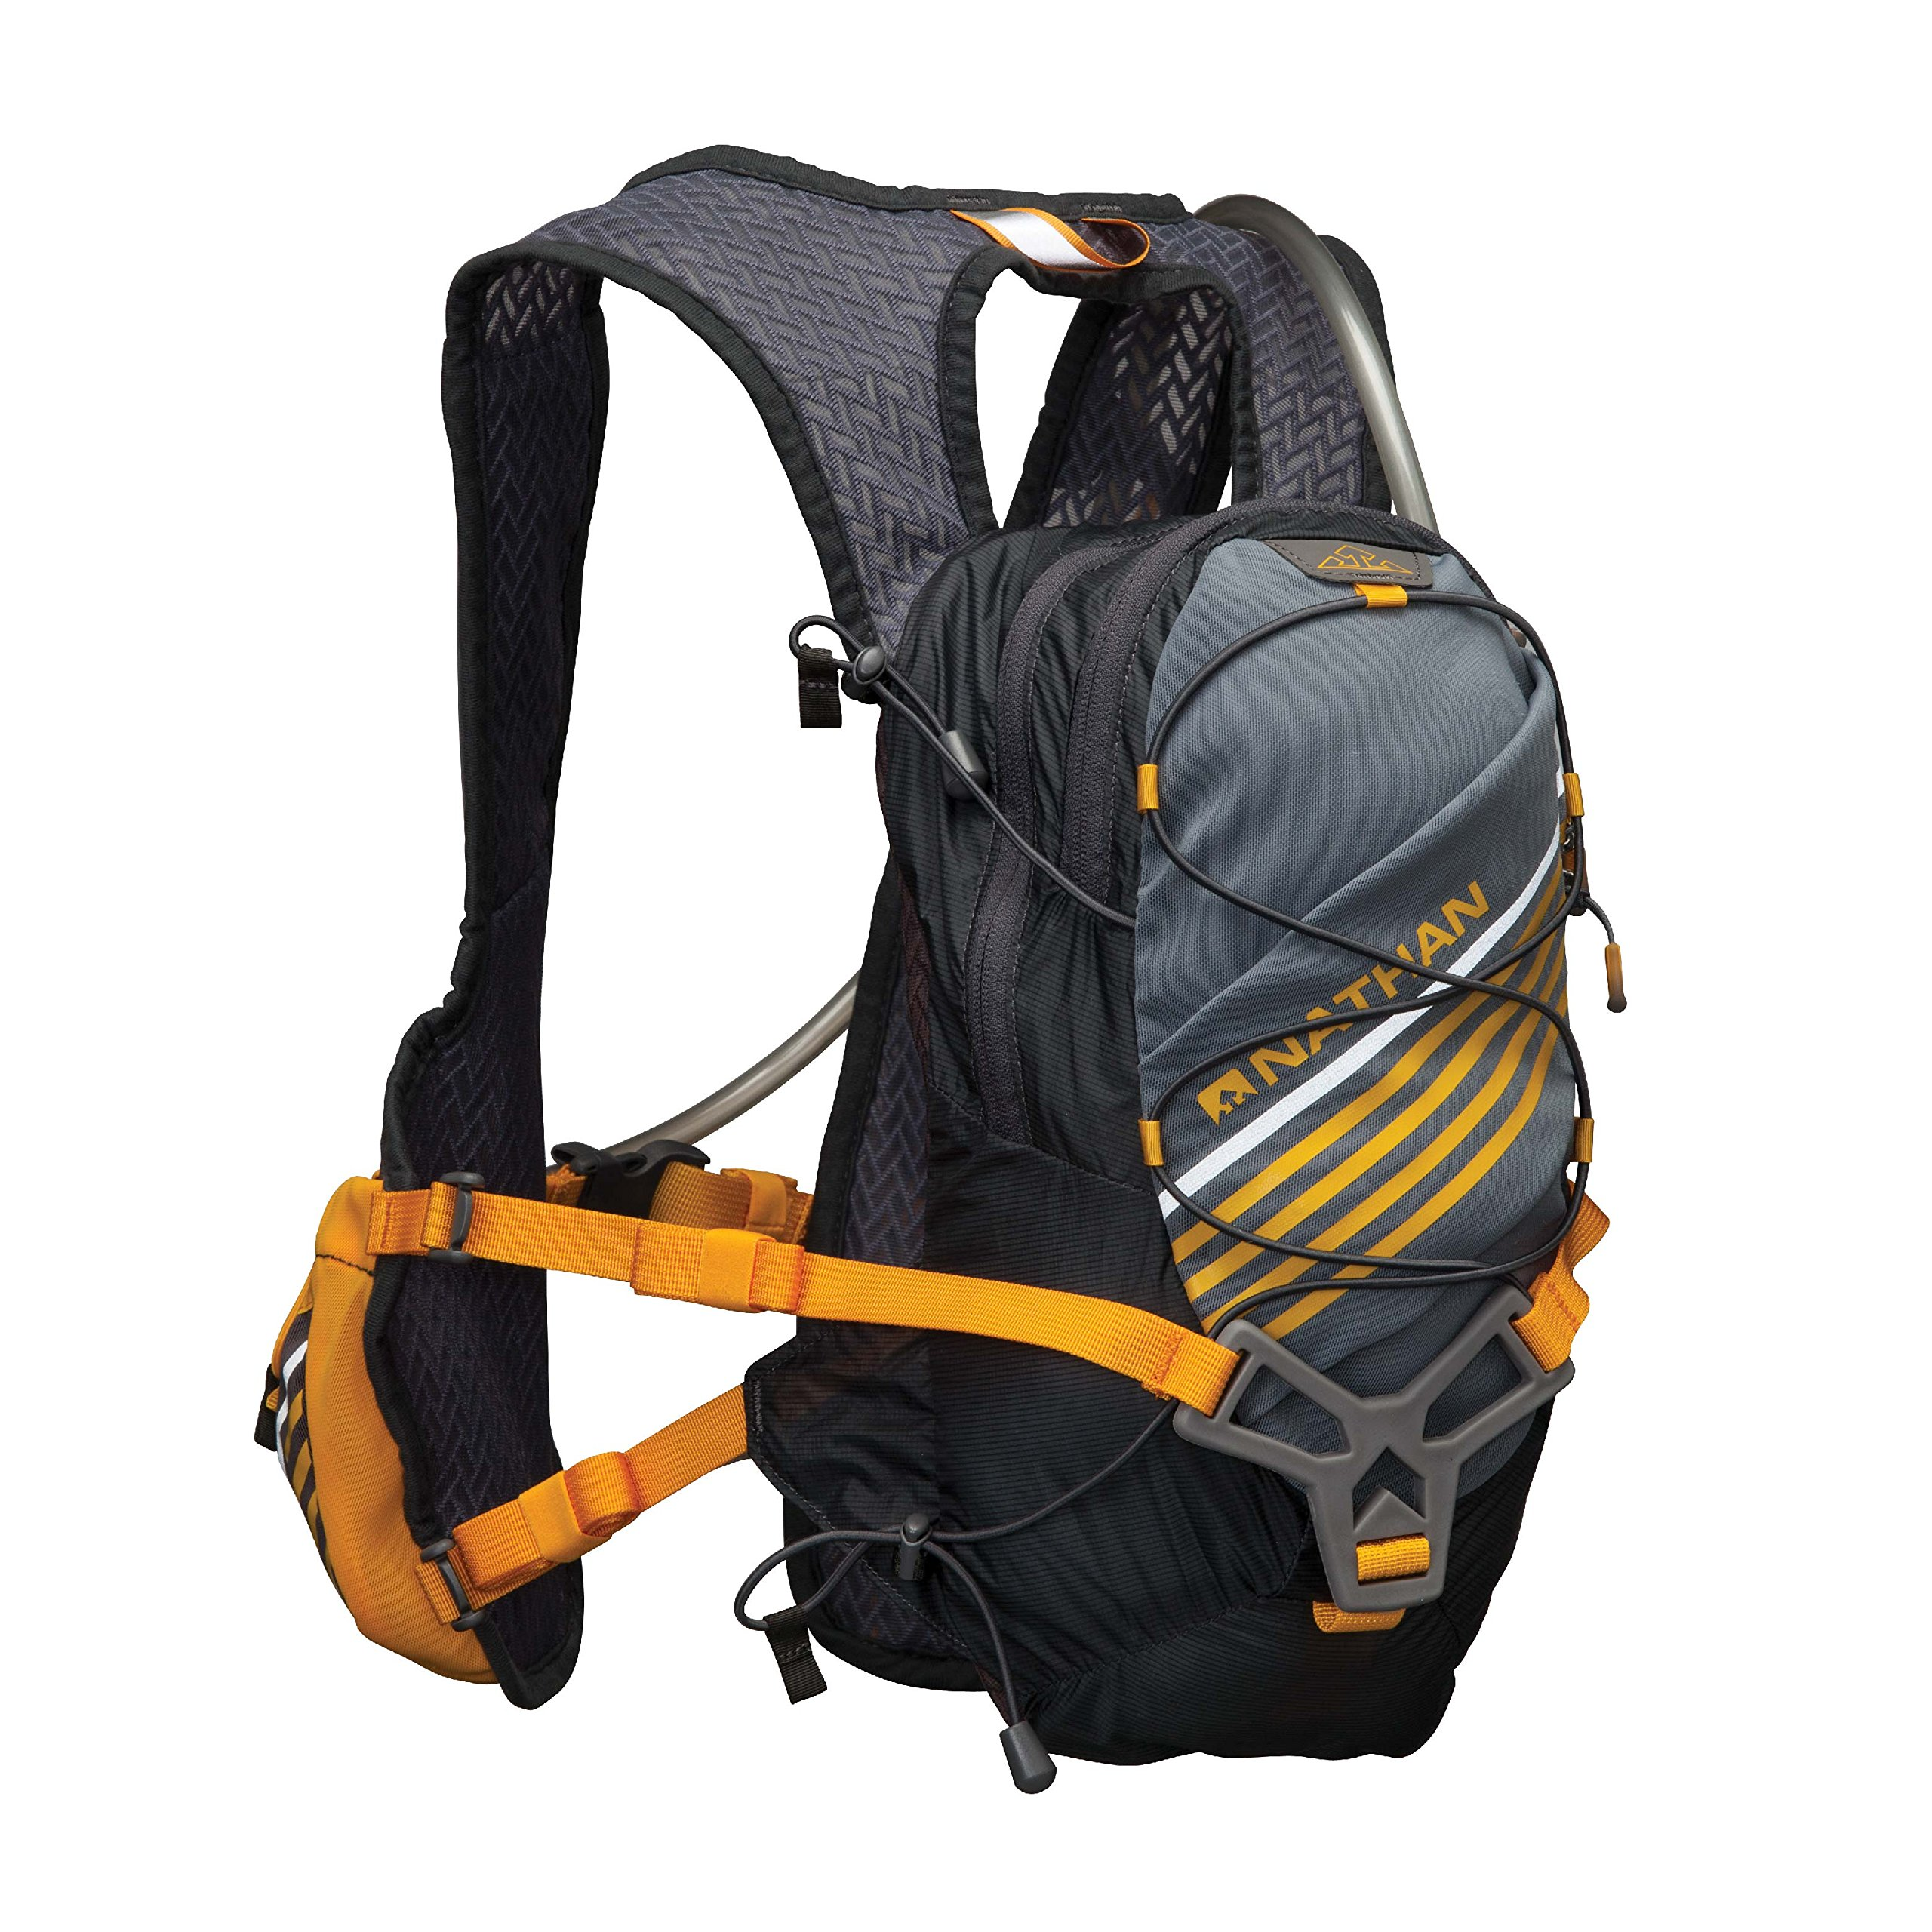 Nathan Zelos 2-Liter Hydration Vest, Nathan Grey, One Size by Nathan (Image #1)